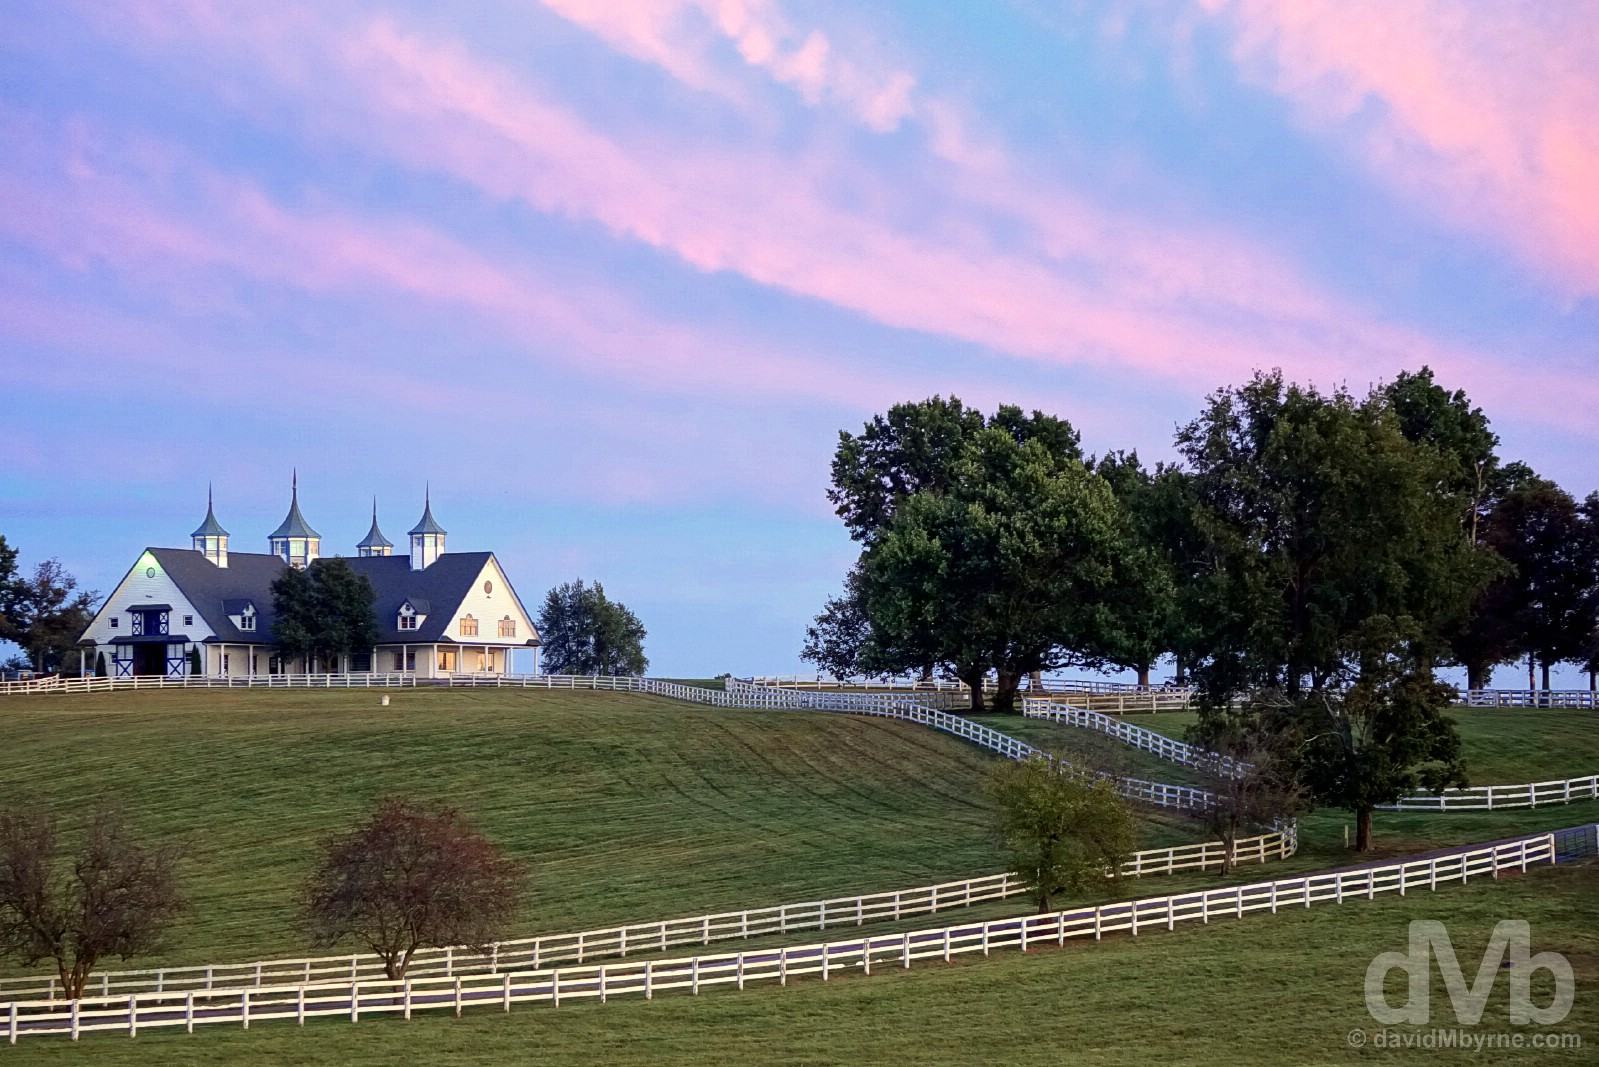 Dusk at the Manchester Farm in horse country on the outskirts of Lexington, Kentucky, USA. September 26, 2016.